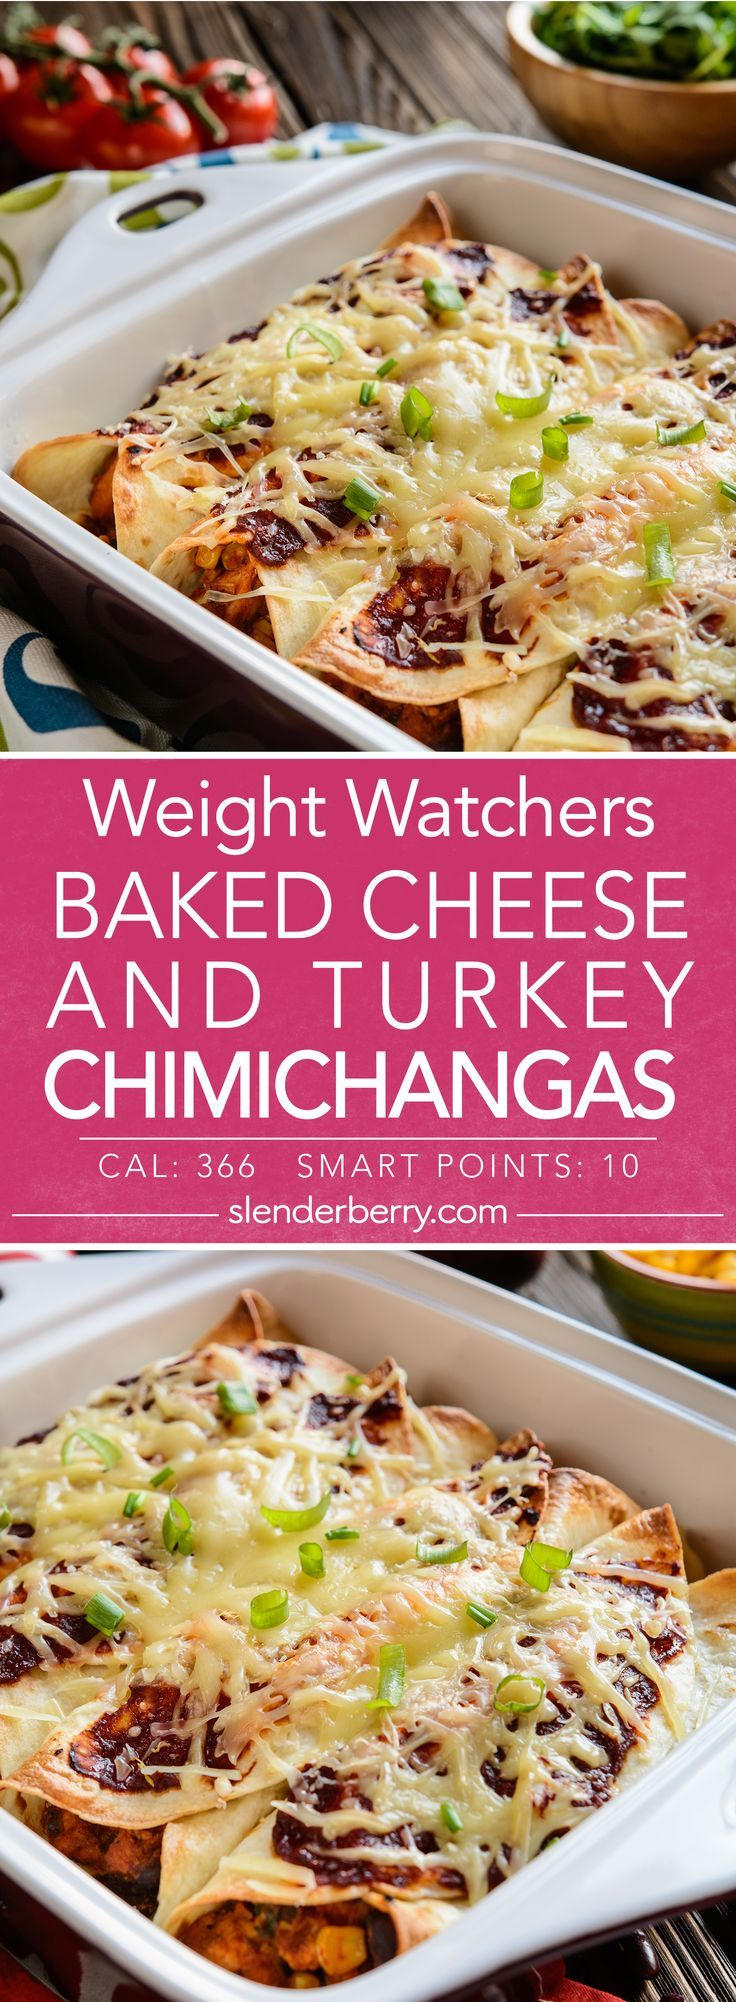 Baked Cheese and Turkey Chimichangas